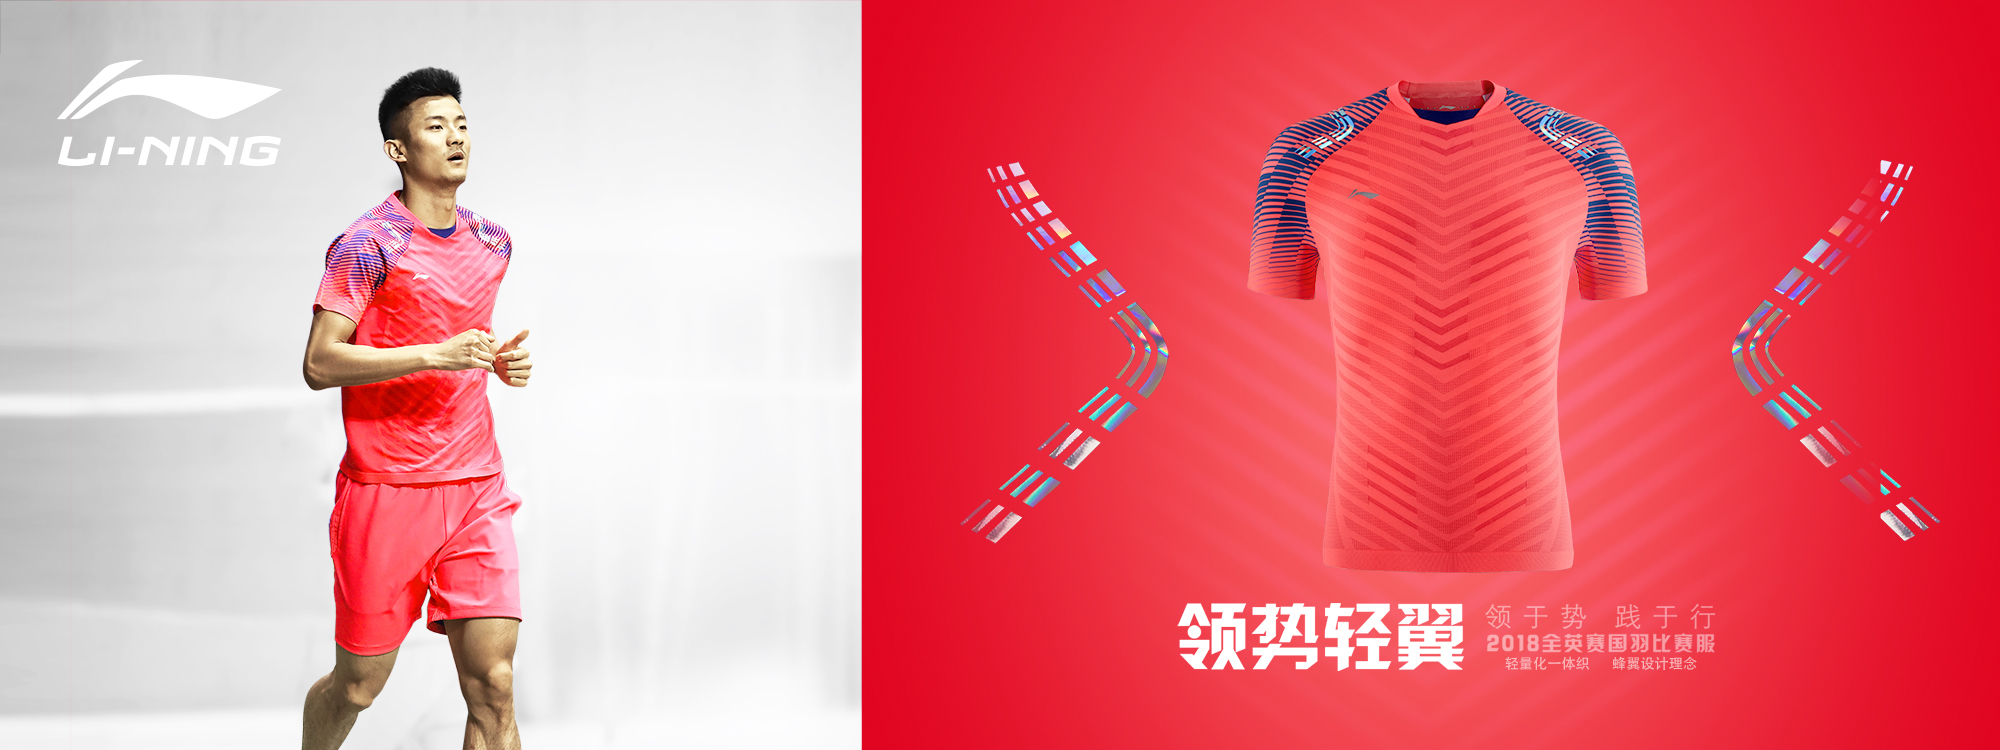 Li-Ning Badminton Clothing